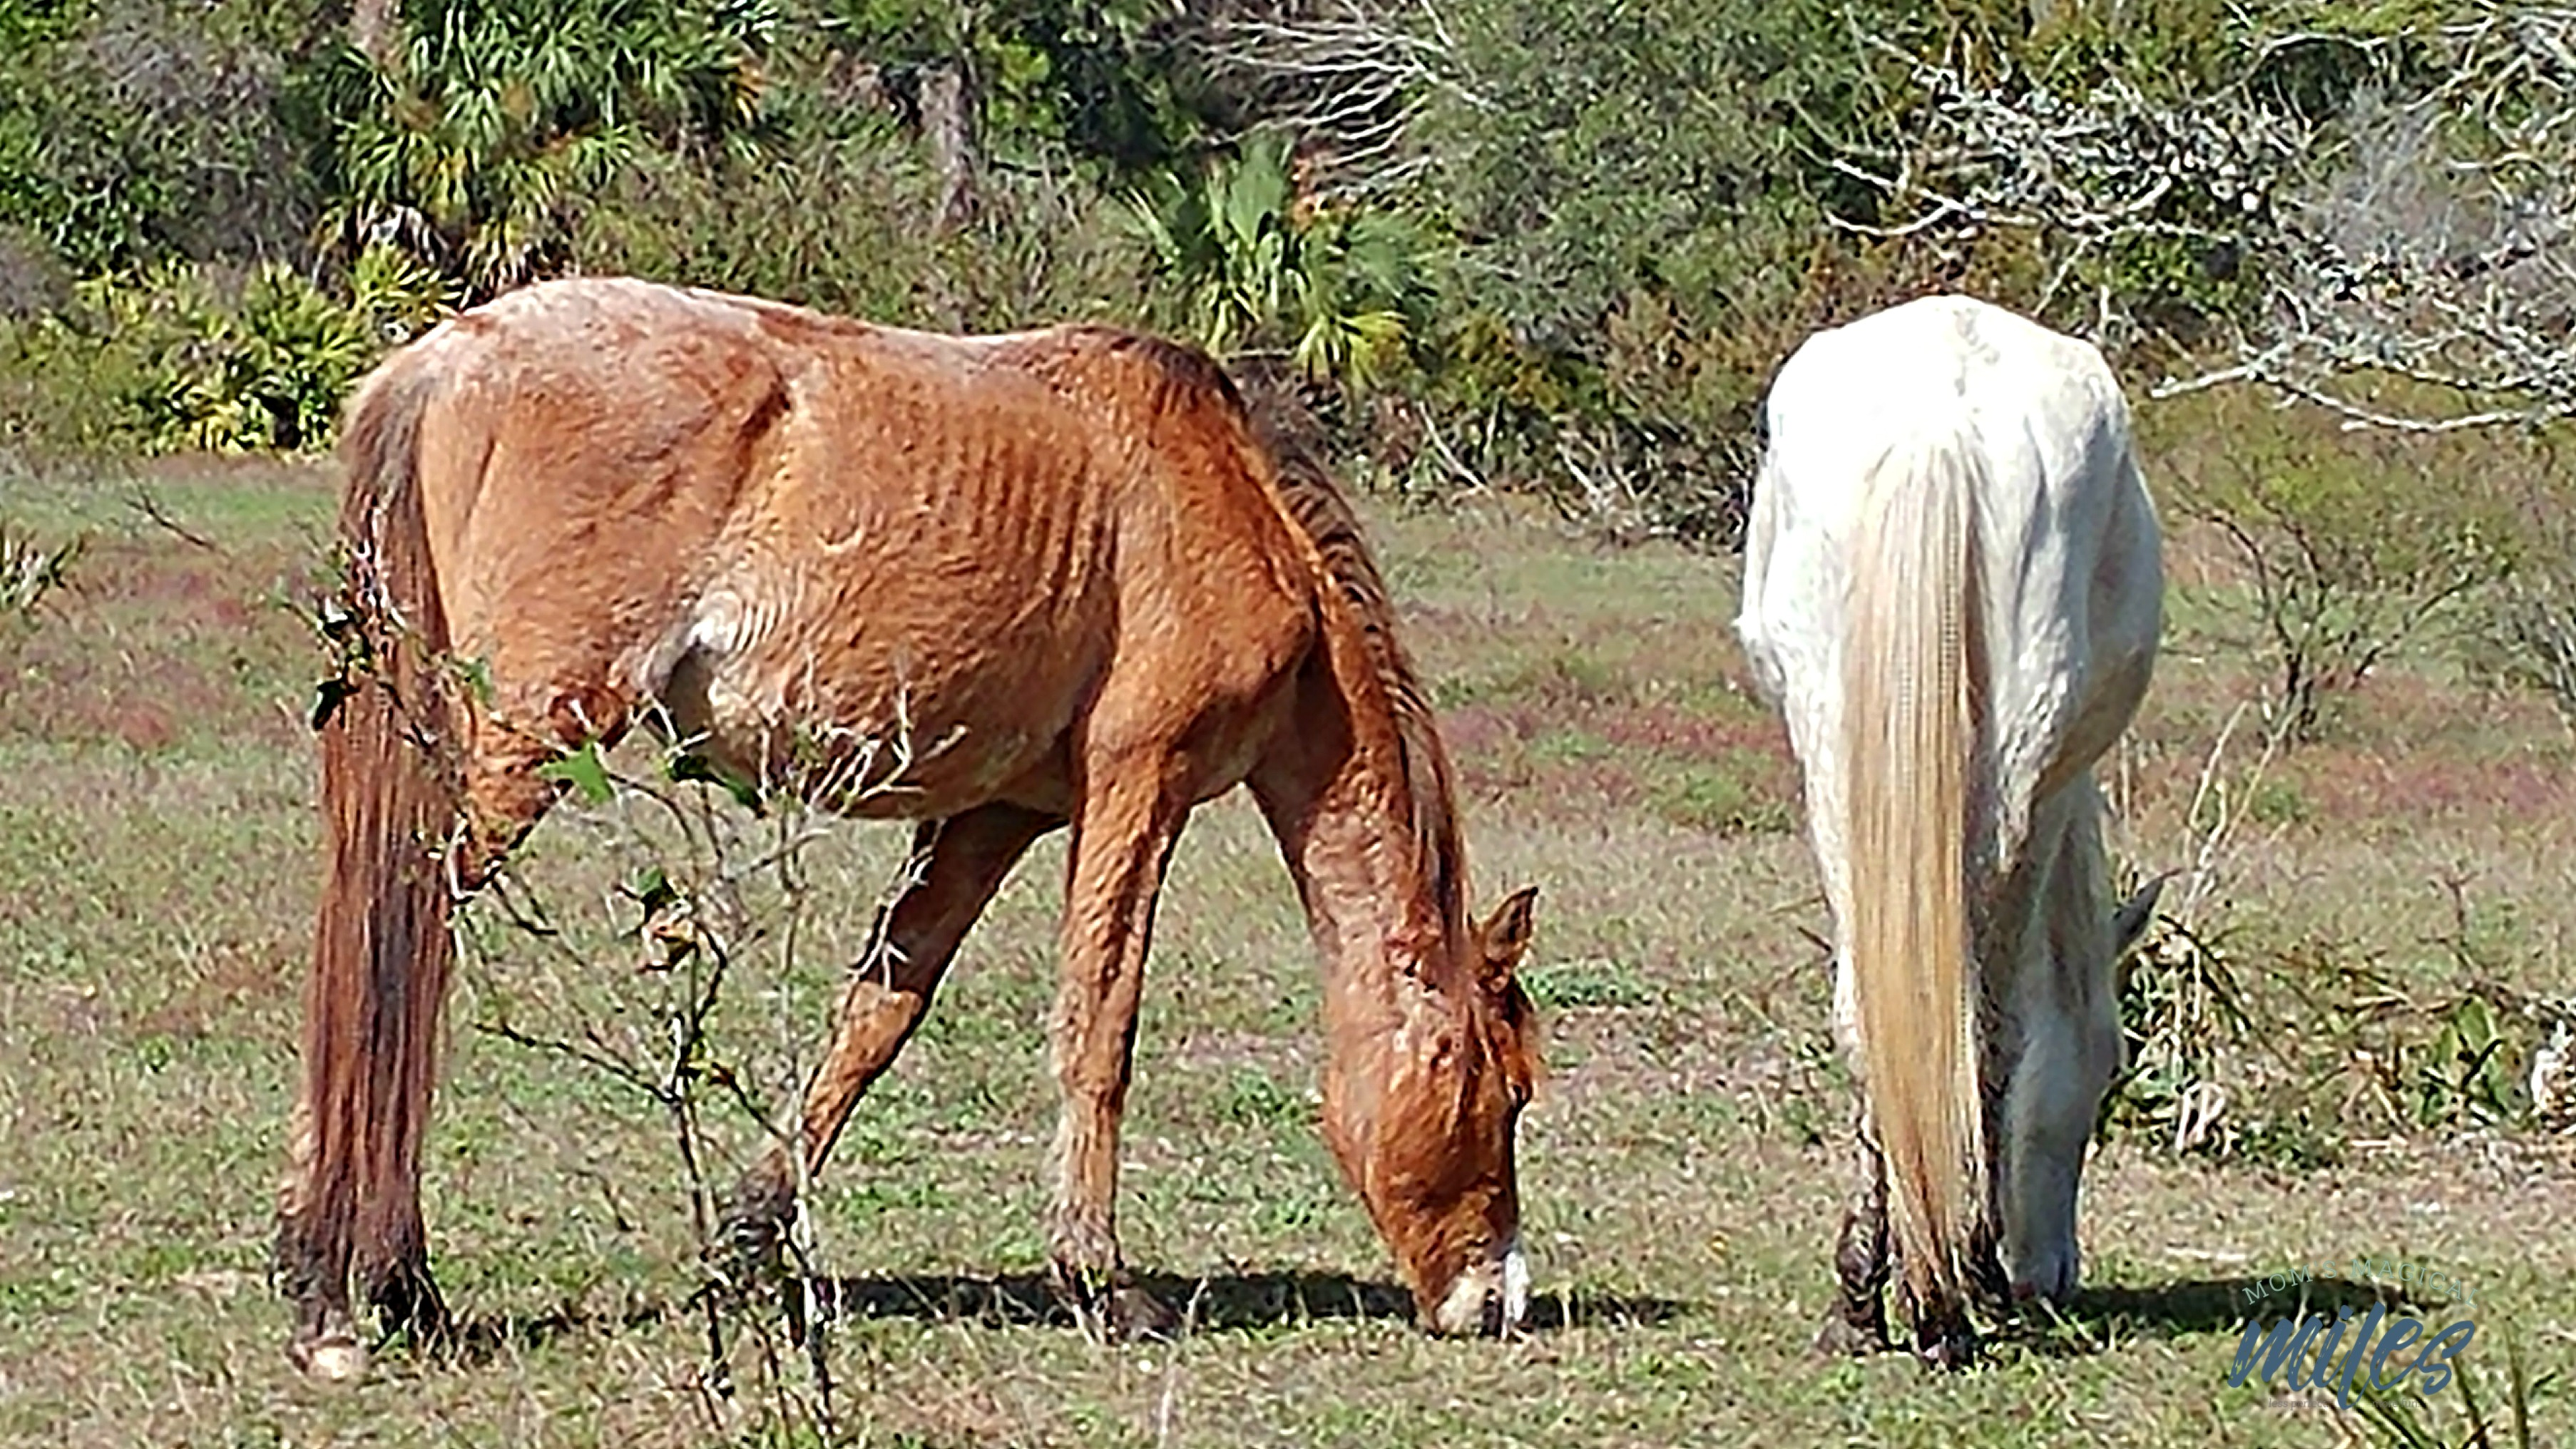 Cumberland Island on the Georgia coast has the only herd of feral horses that is not managed in any way.